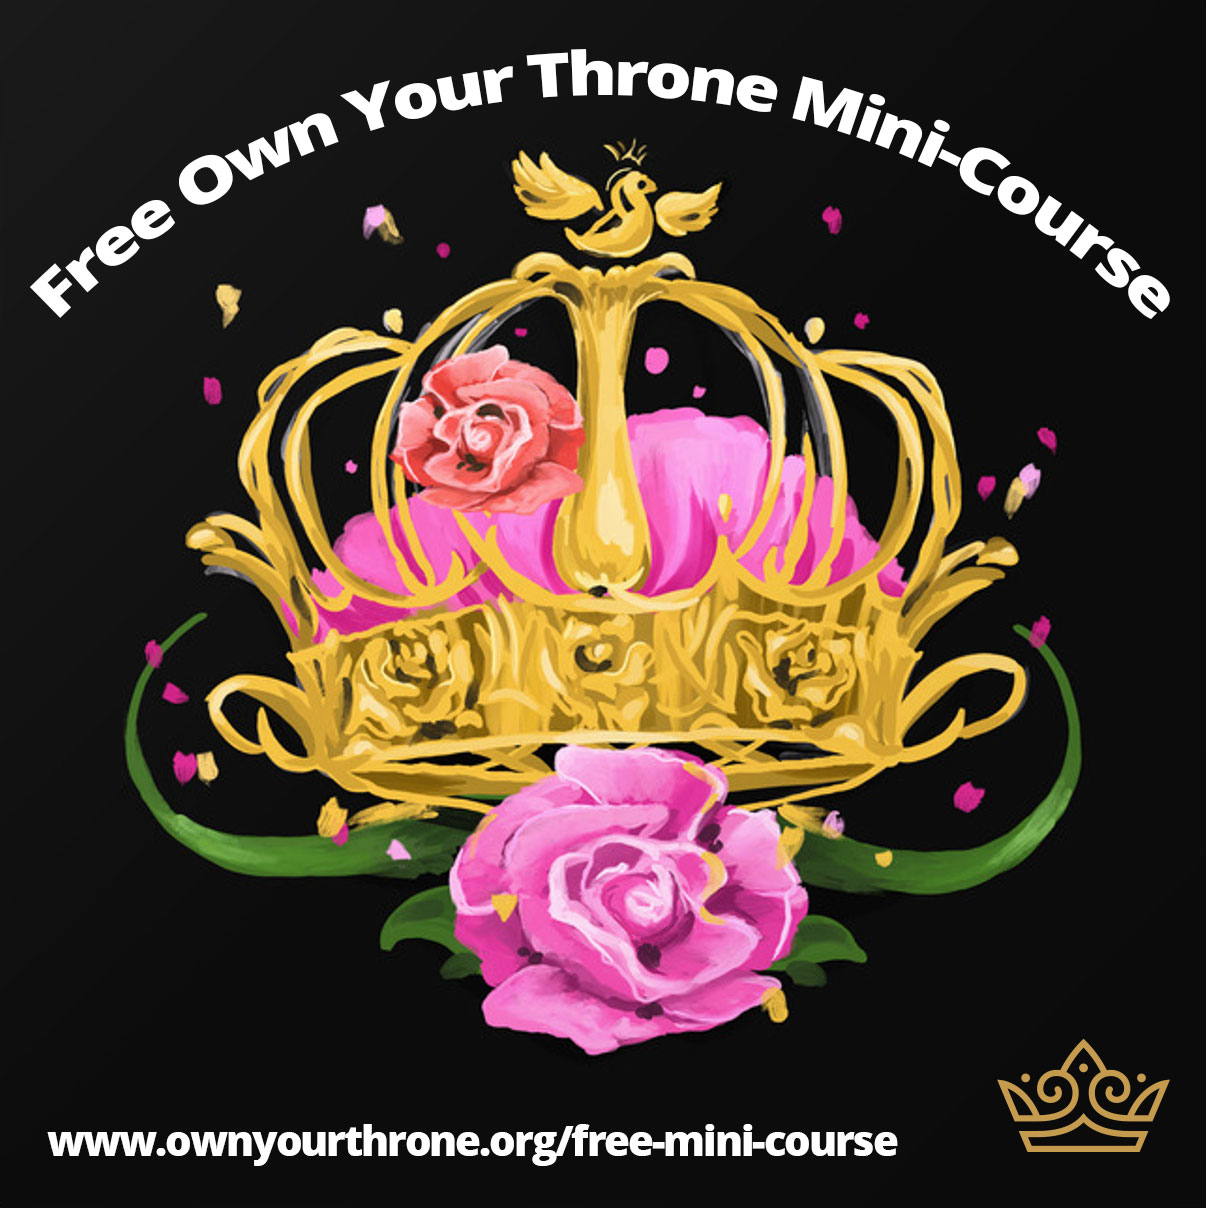 Own Your Throne: Free Mini Course